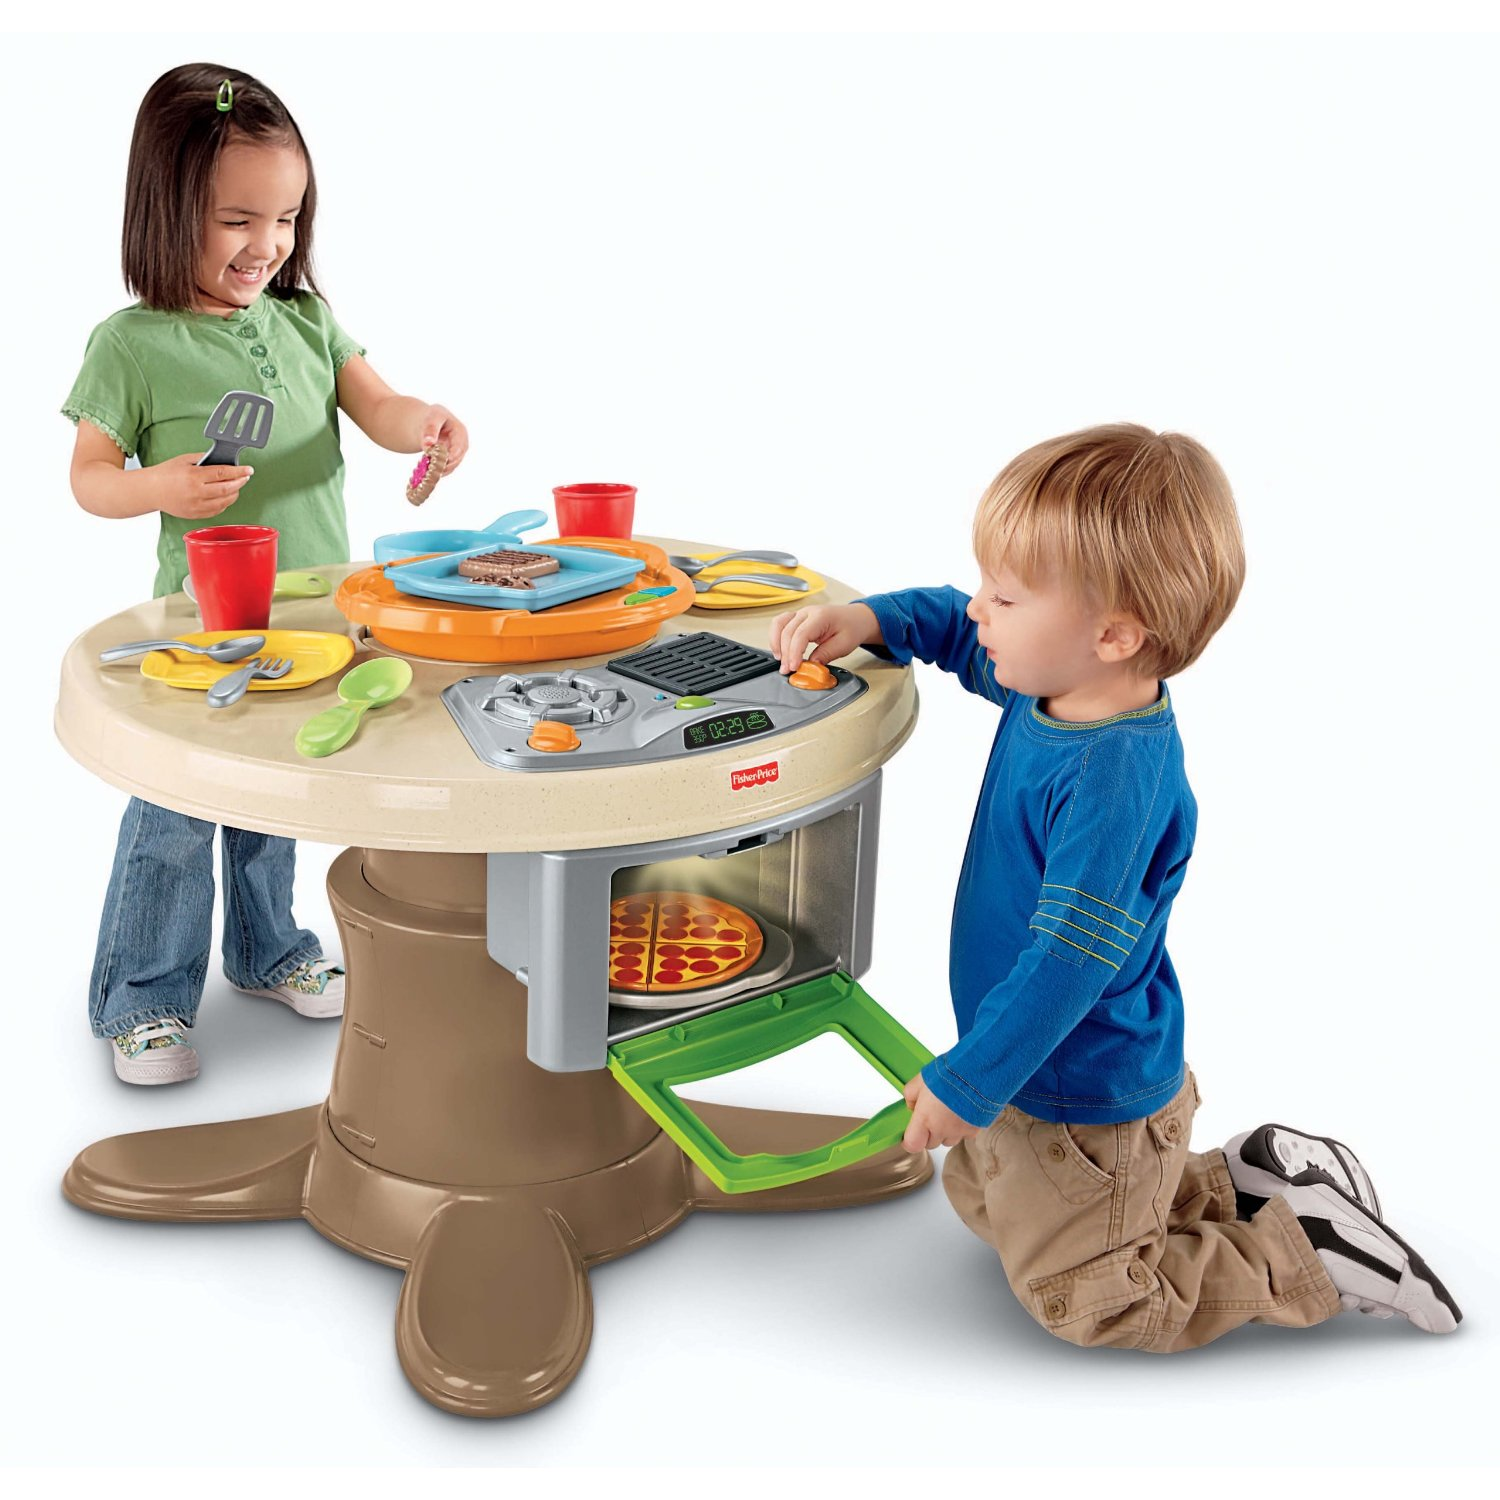 play kitchen for toddler discontinued cabinets cool holiday gift ideas boys ages 1 3